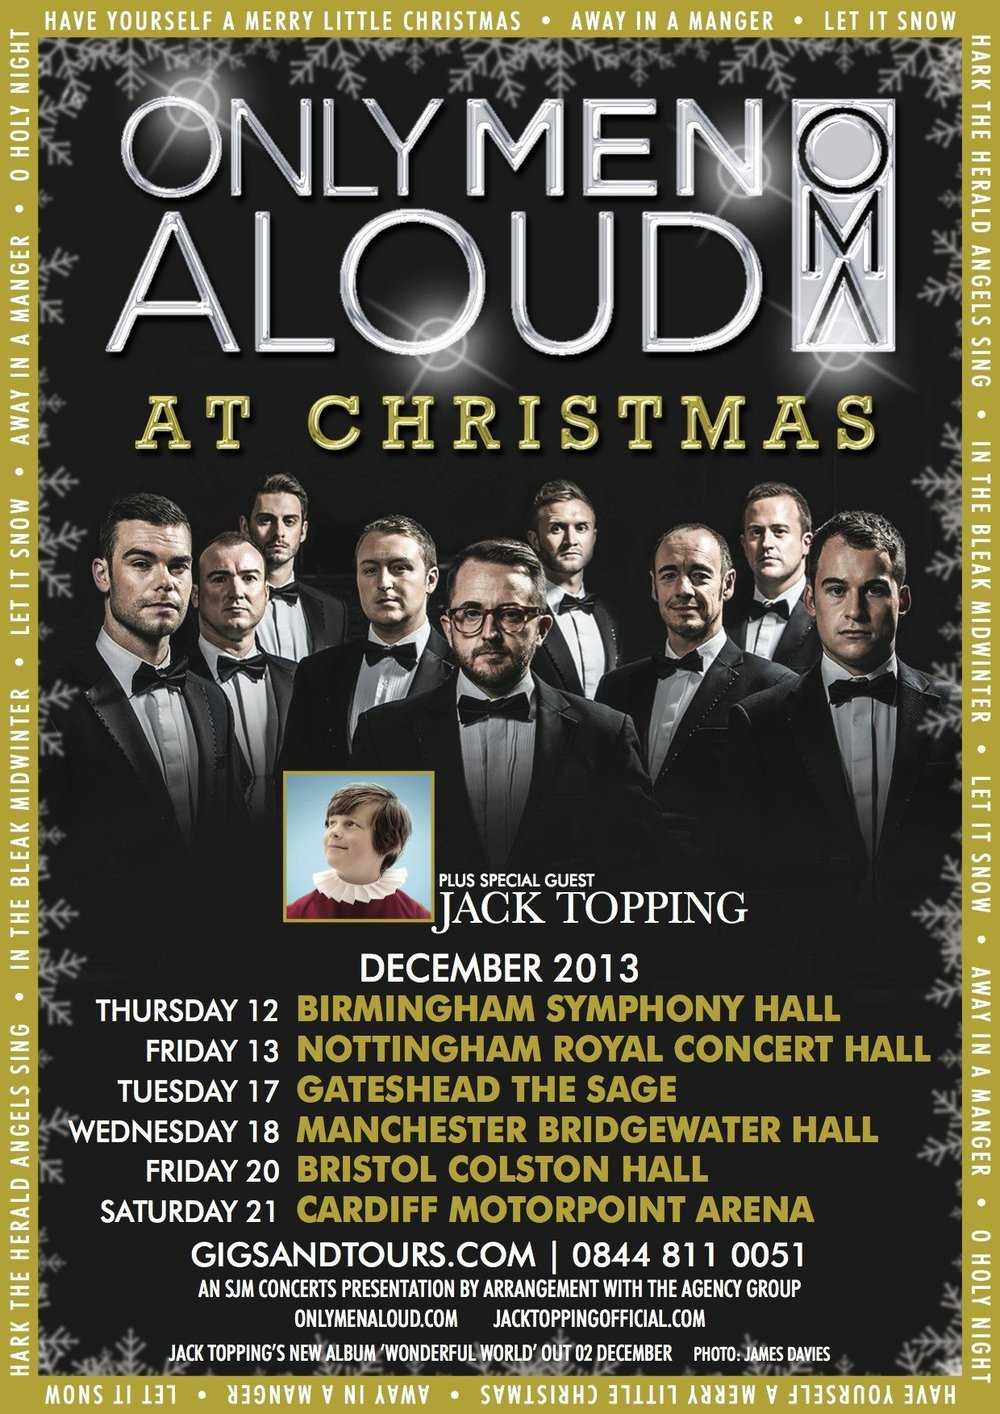 Only Men Aloud - UK Tour, Christmas 2013 artwork, featuring orchestrations by Jude Obermüller.jpg